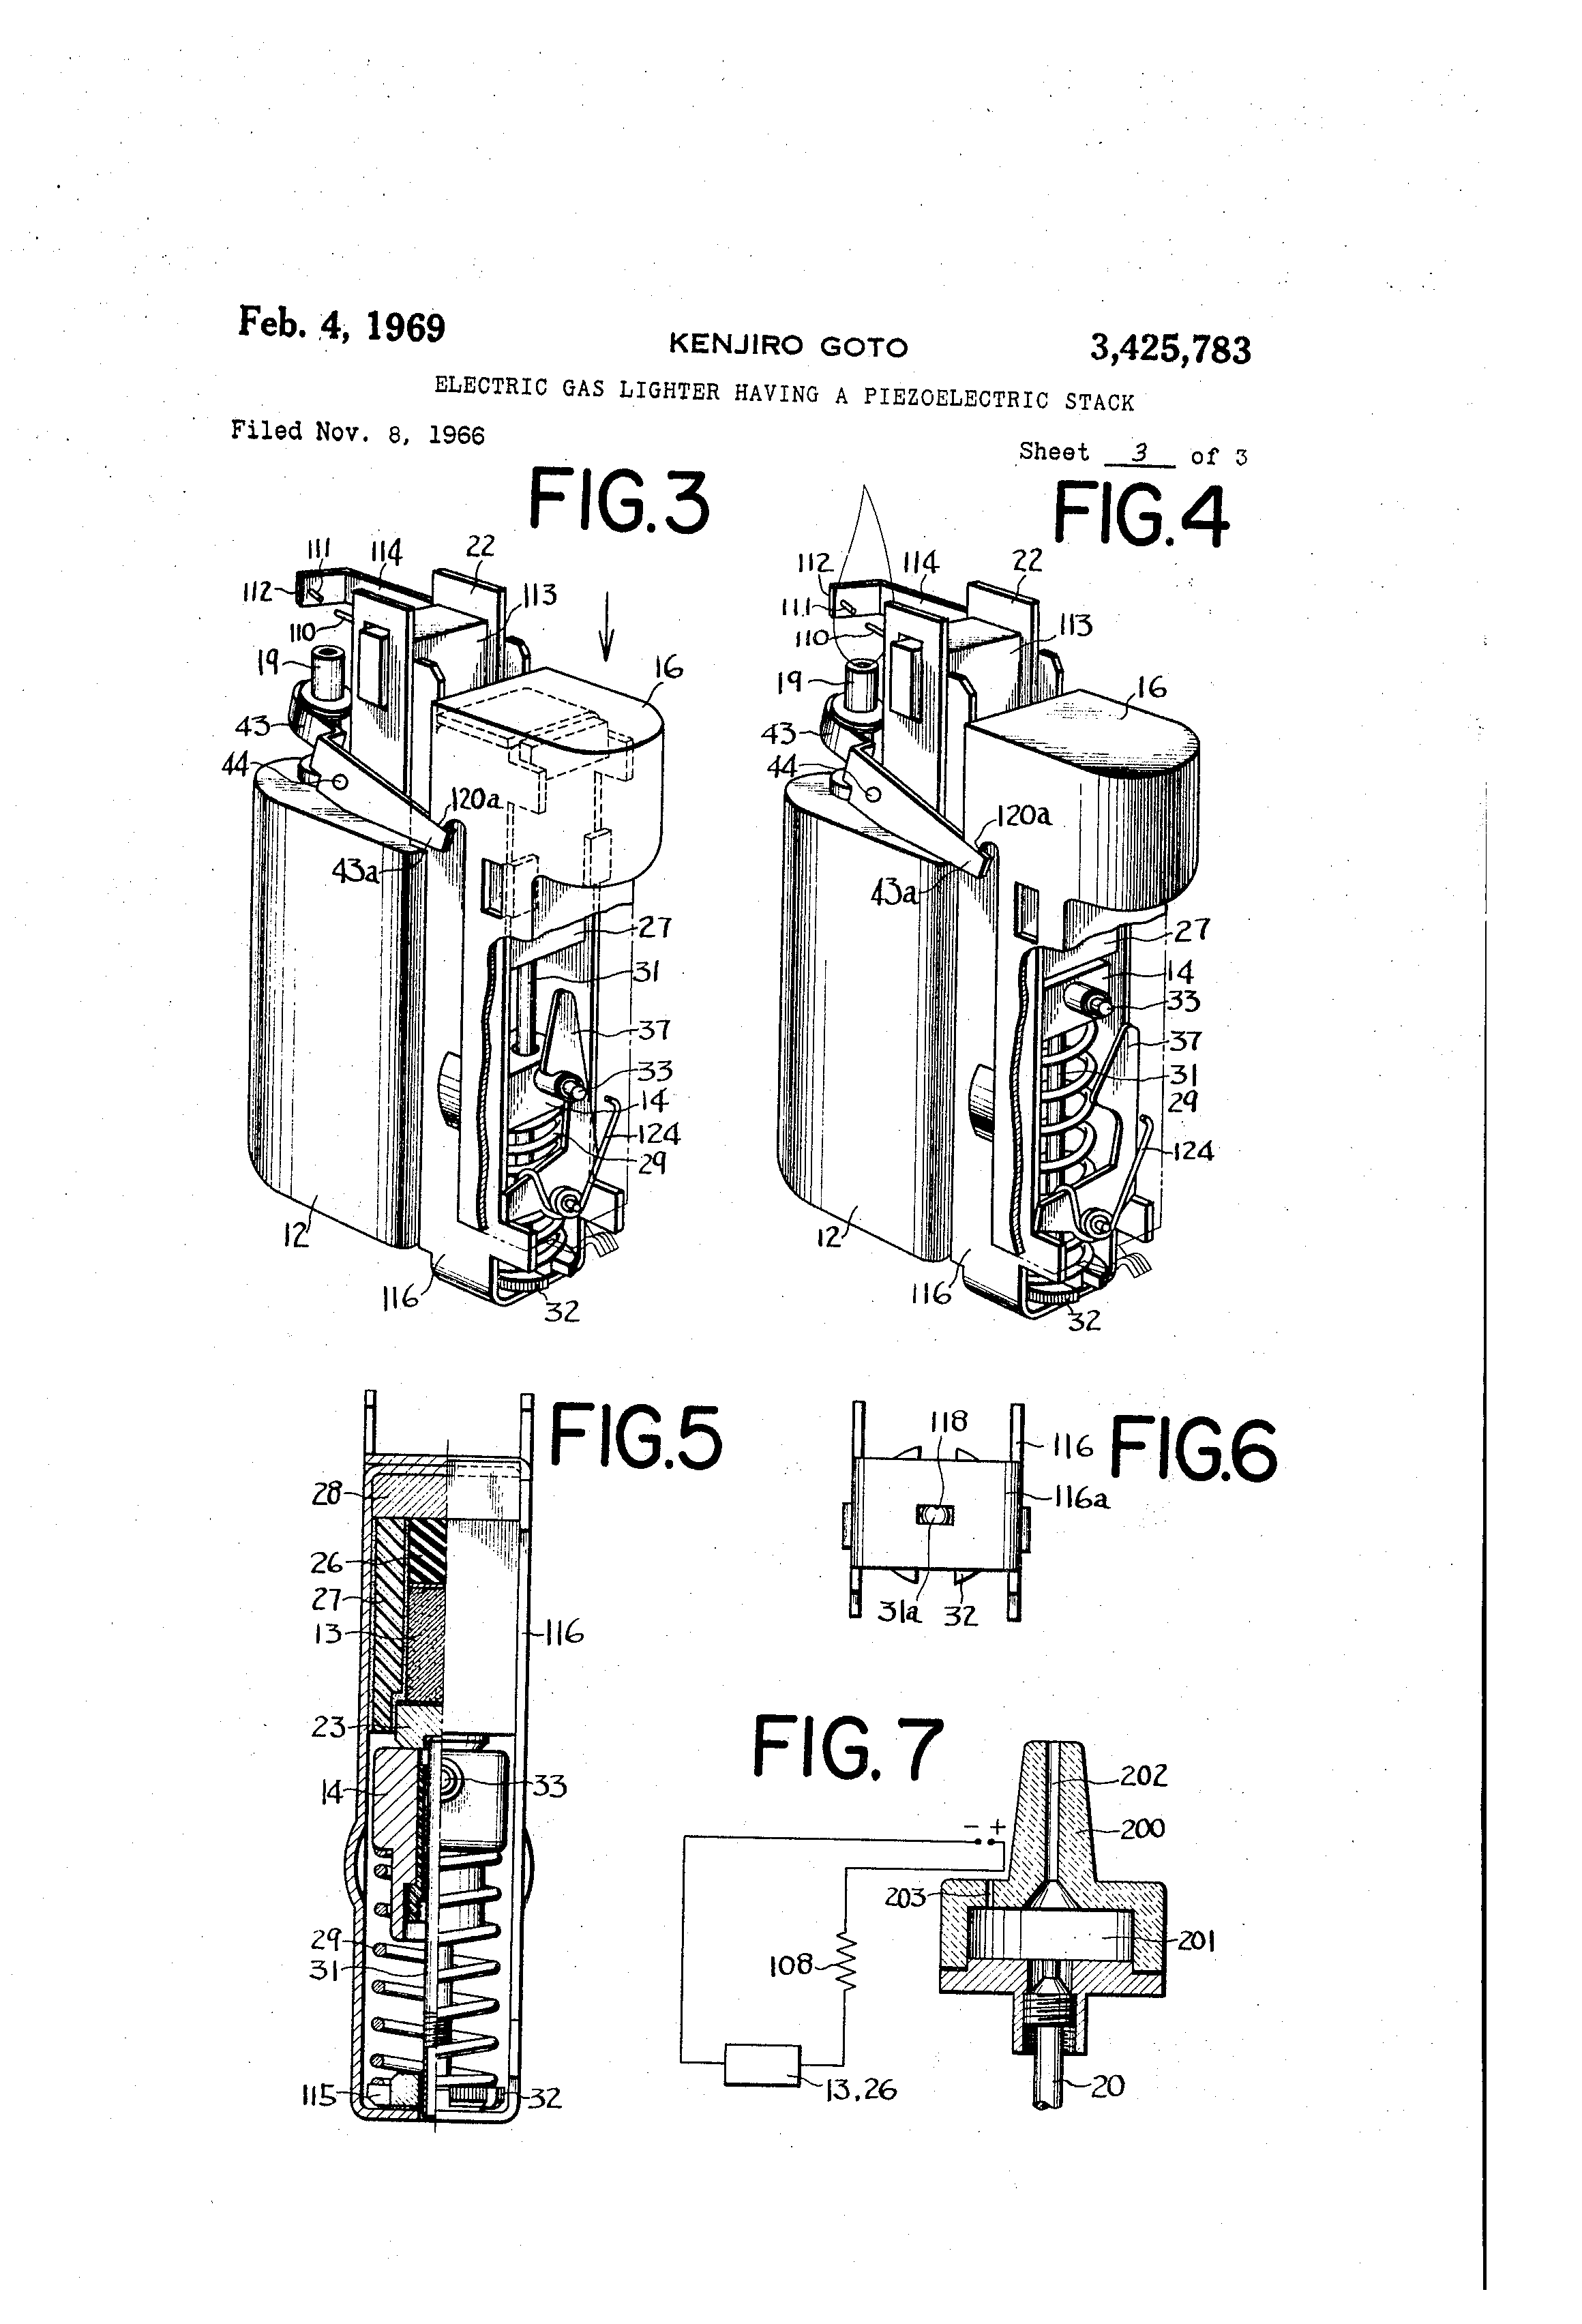 patent us3425783 - electric gas lighter having a piezoelectric stack